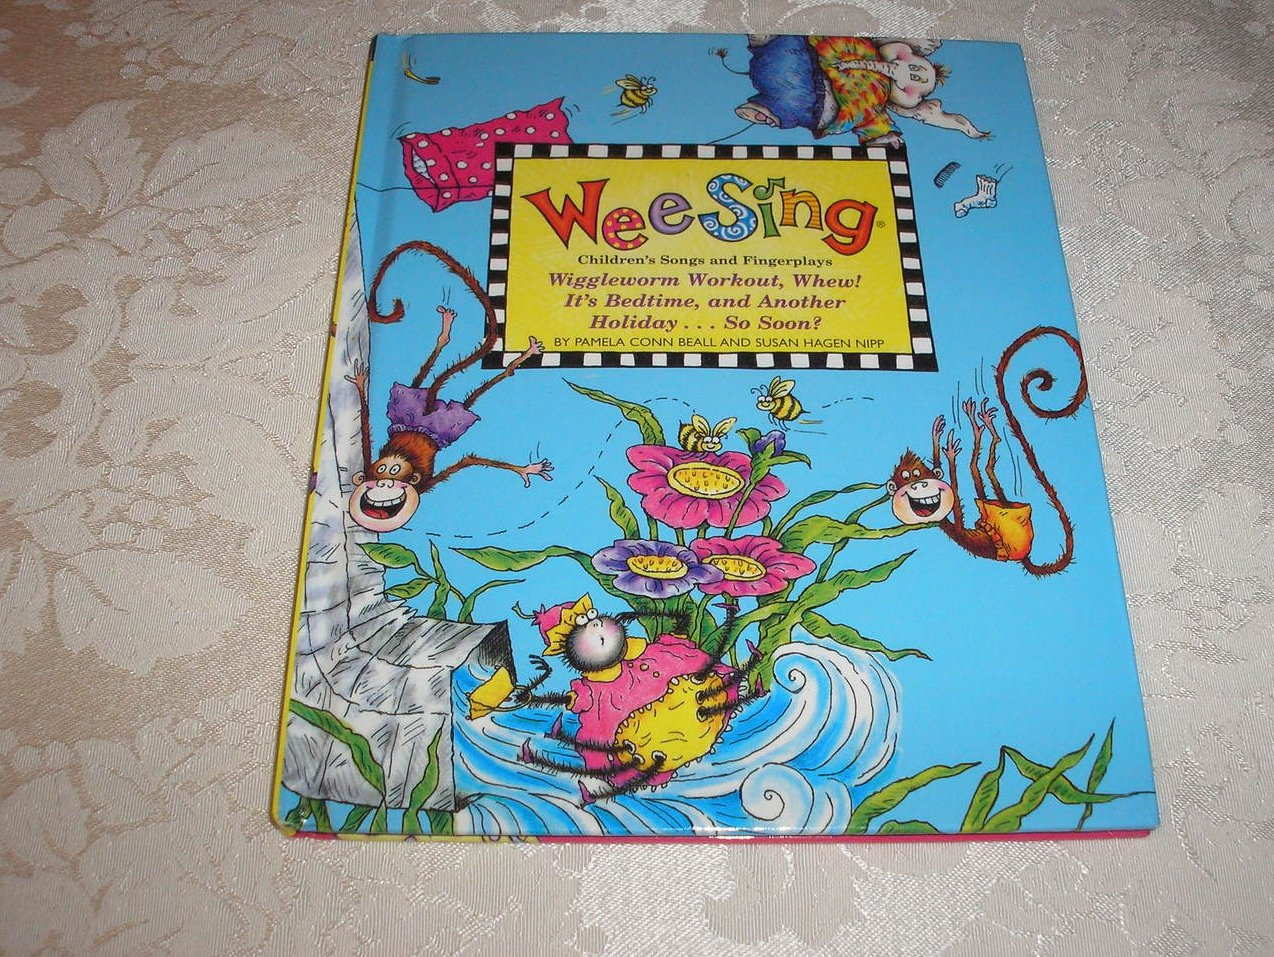 Wee Sing Children's Songs and Fingerplays series book 10 very good hc